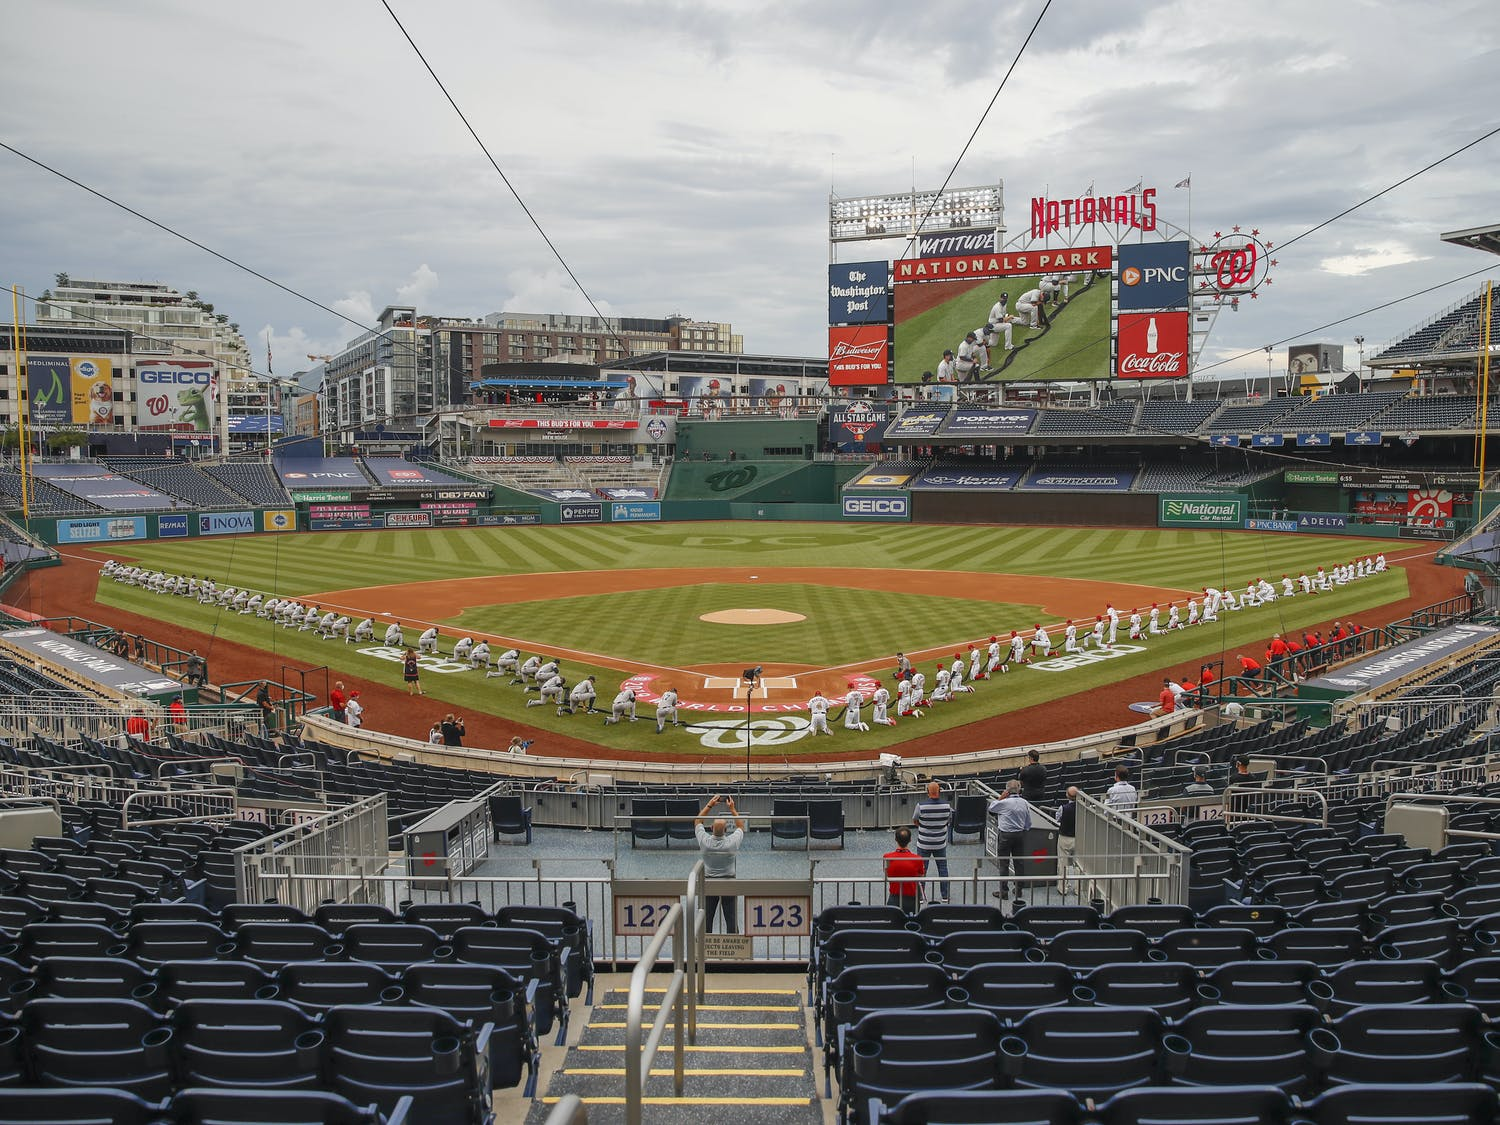 The New York Yankees and the Washington Nationals kneel while holding a black ribbon to honor Black Lives Matter before playing an opening day baseball game at Nationals Park, Thursday, July 23, 2020, in Washington. before the start of the first inning of an opening day baseball game at Nationals Park, Thursday, July 23, 2020, in Washington. (AP Photo/Alex Brandon)